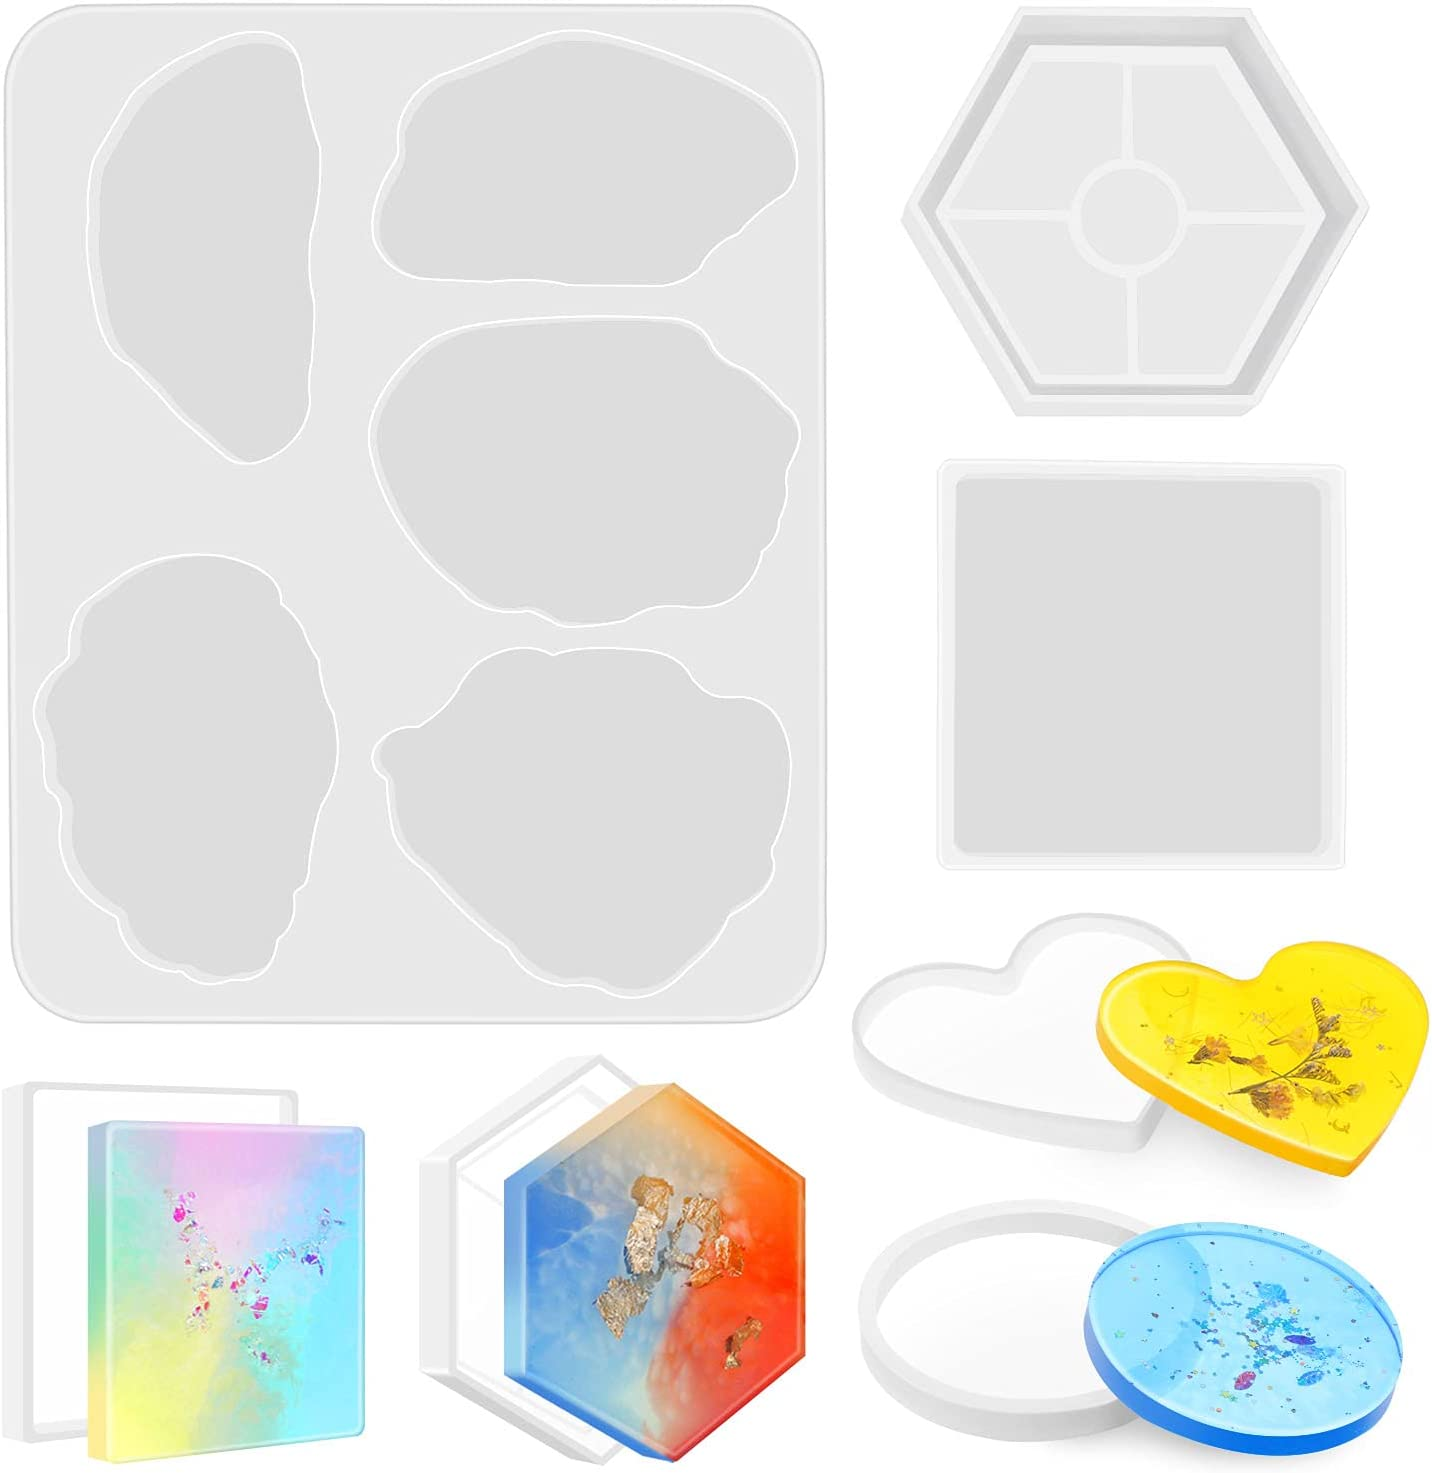 Silicone Coaster Pad Resin Casting Mold Agate Epoxy Mould Fruit Bowl Basket Rack